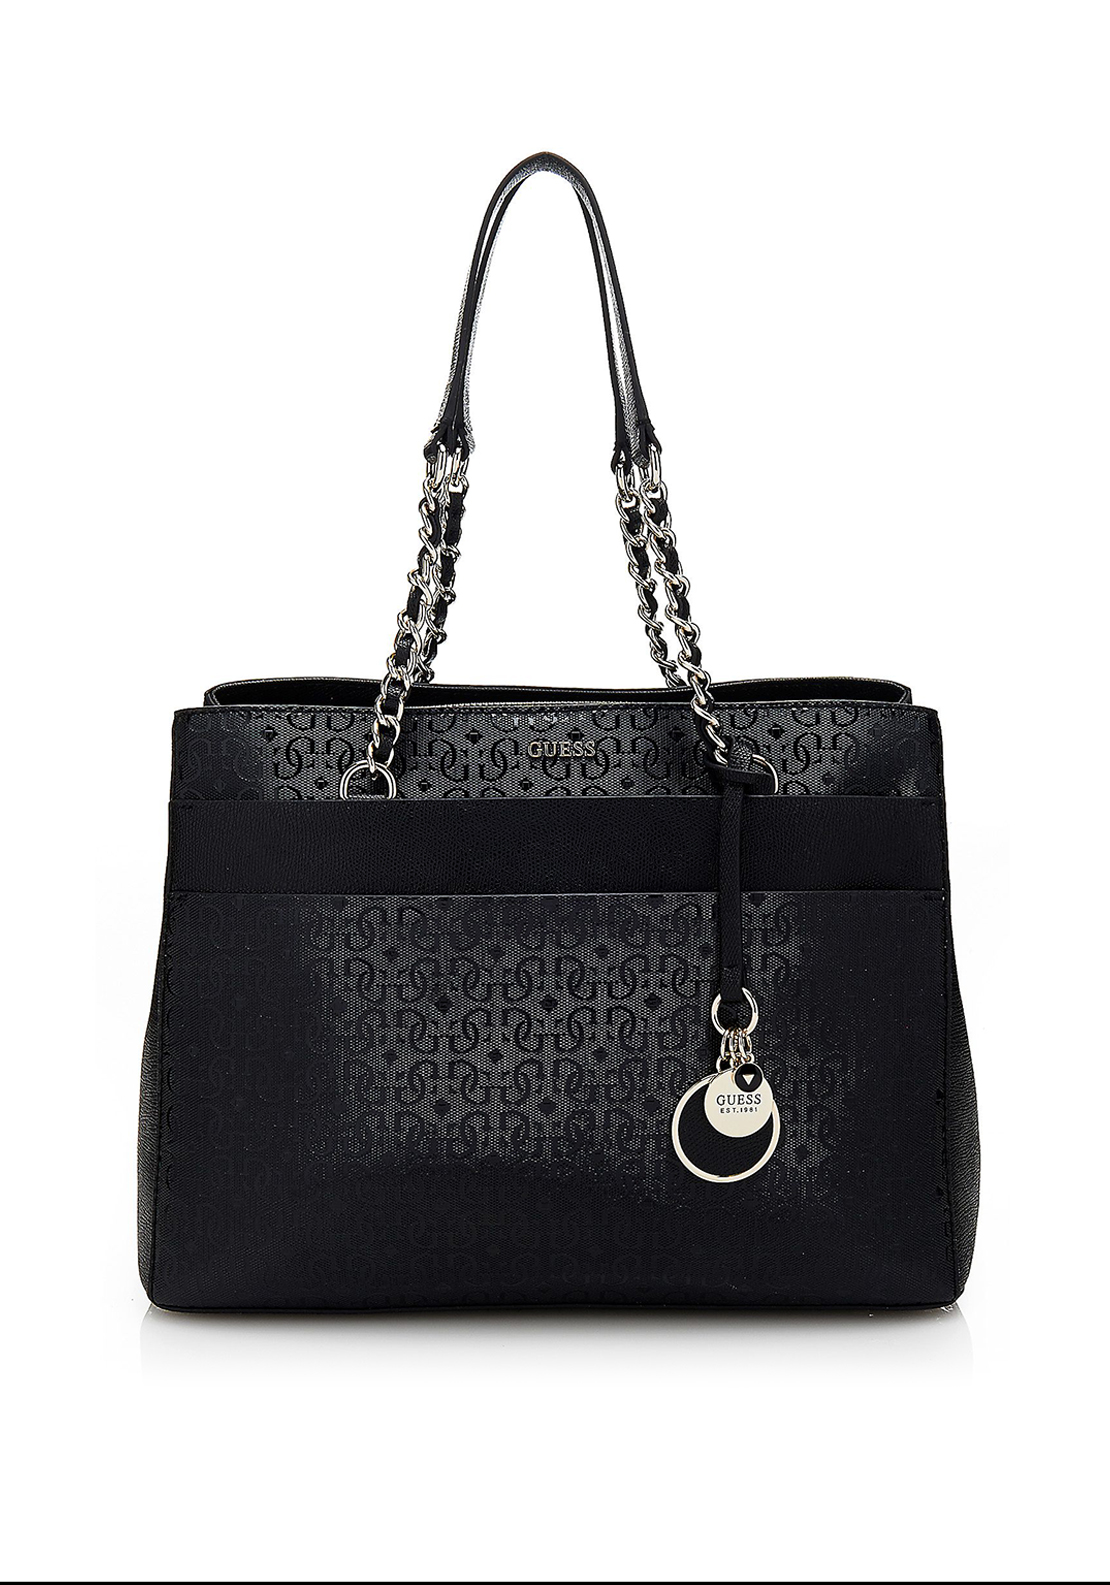 Guess Janette Logo Tote Bag, Black